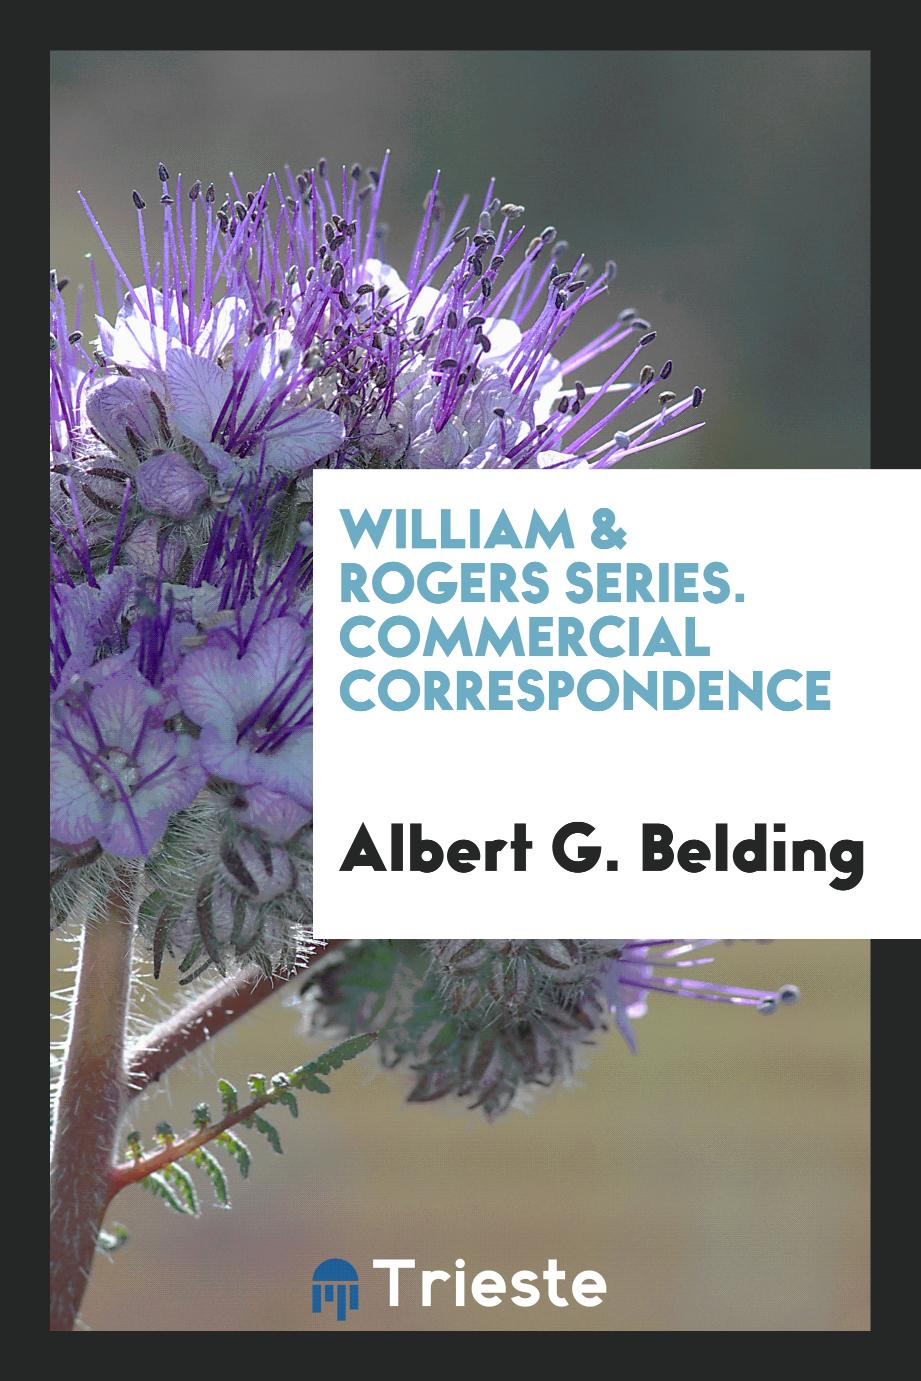 William & Rogers Series. Commercial Correspondence